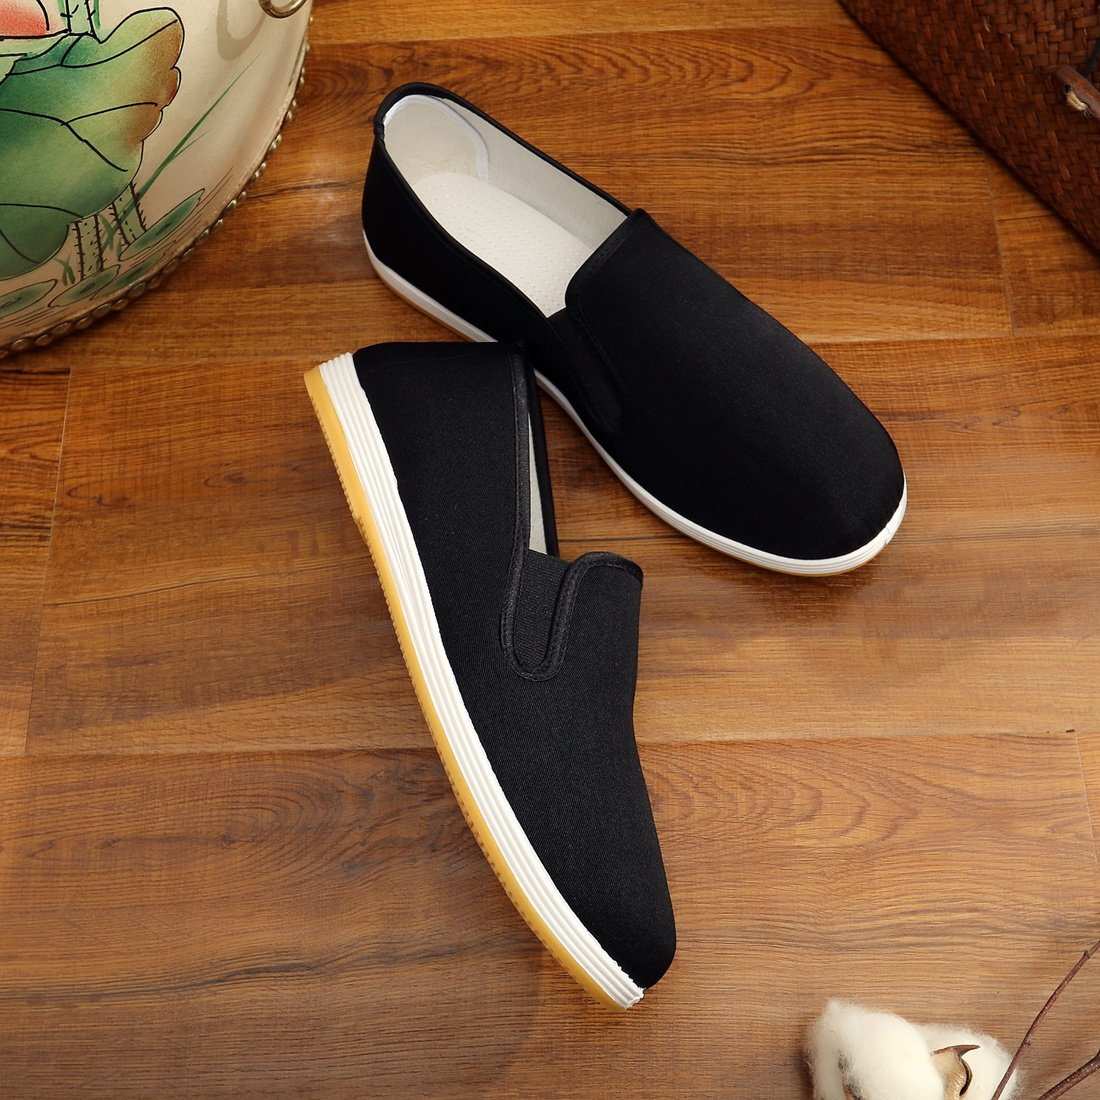 7409df001 APIKA Chinese Traditional Old Beijing Shoes Kung Fu Tai Chi Shoes Rubber  Sole Unisex Black Top Christmas gifts 2018